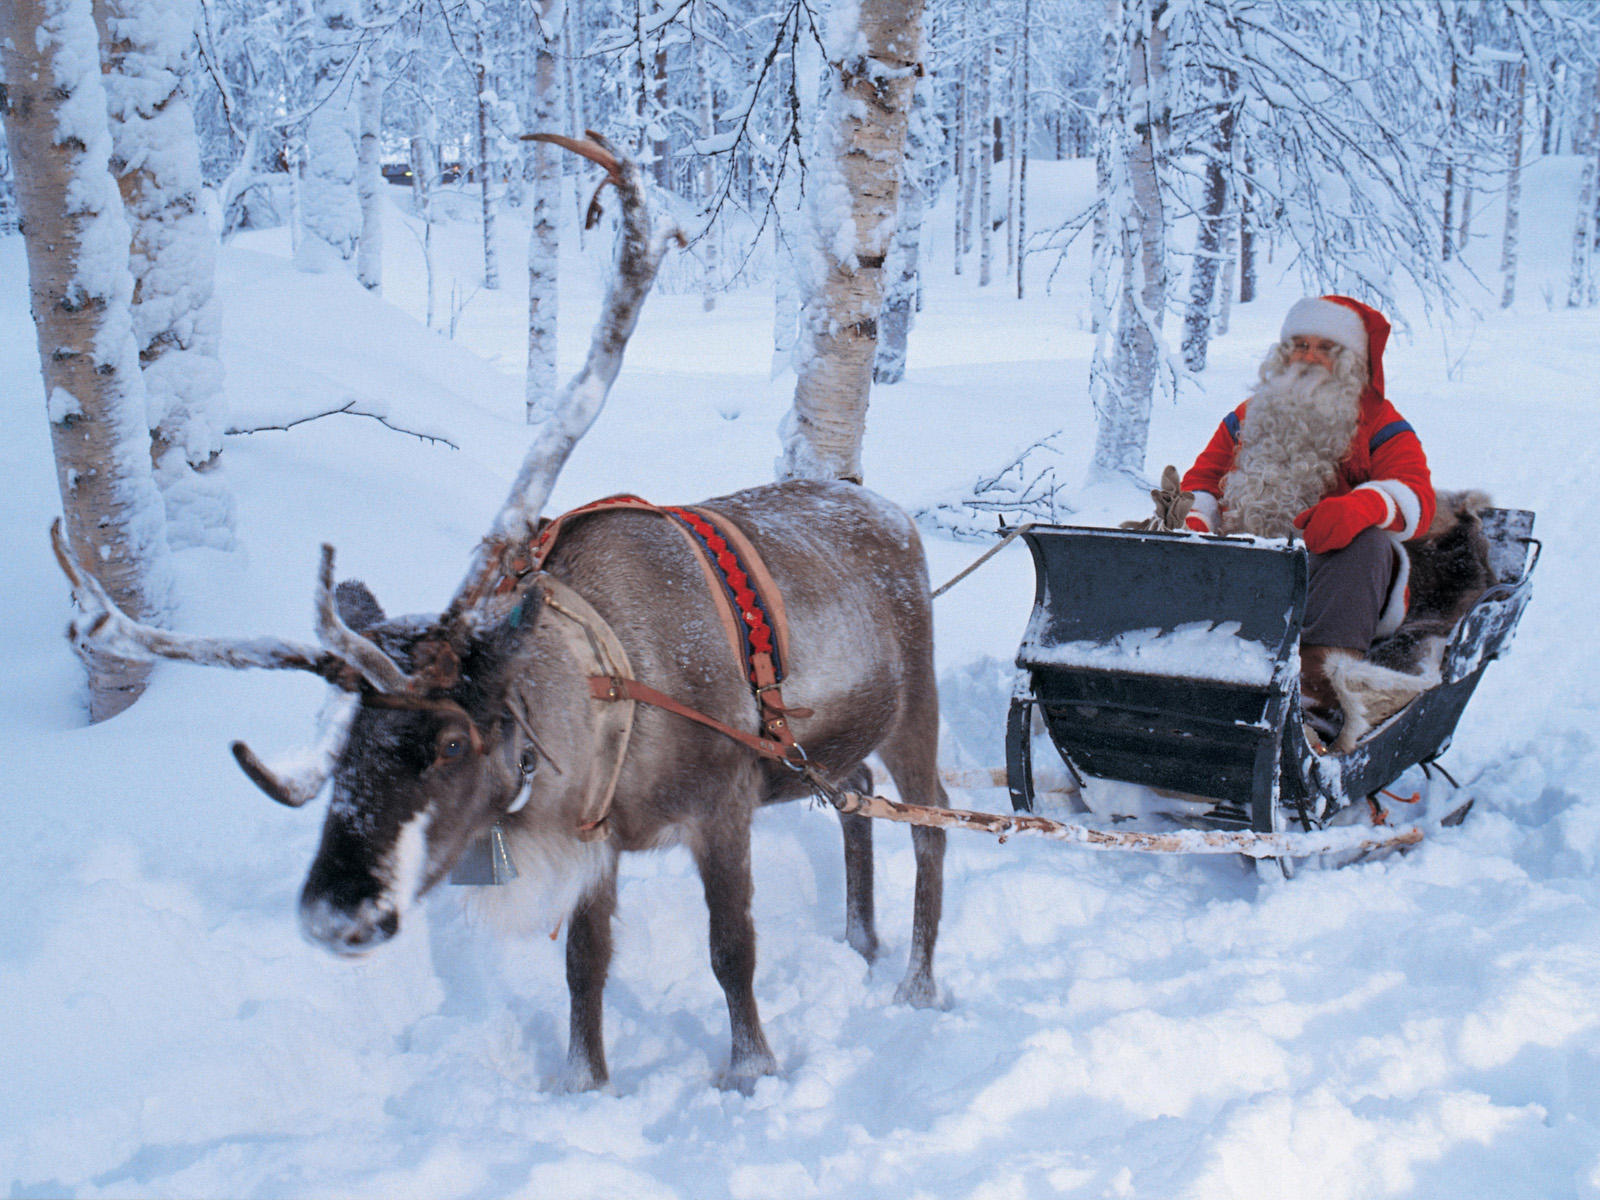 Most Inspiring Wallpaper Horse Winter - santa-claus-sleigh-ride-lapland-finland  2018_60989.jpg